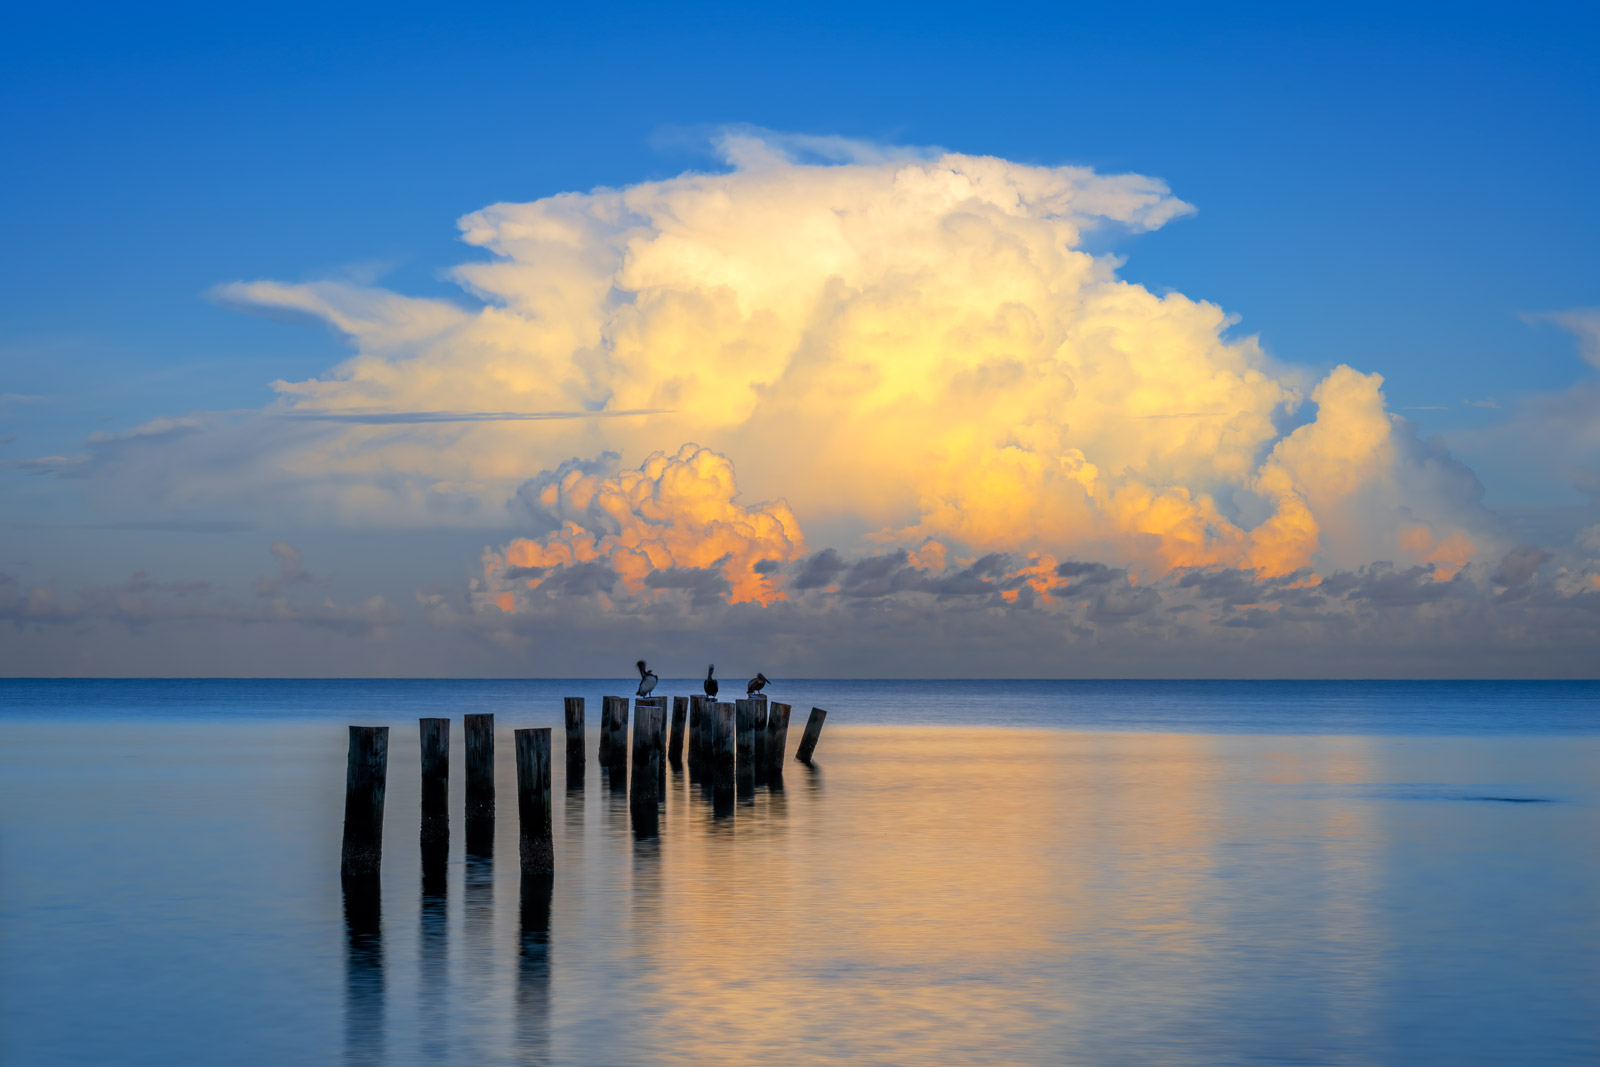 A Limited Edition, Fine Art photograph of the old Naples Pier pilings with morning storm clouds behind them being lit up by the...